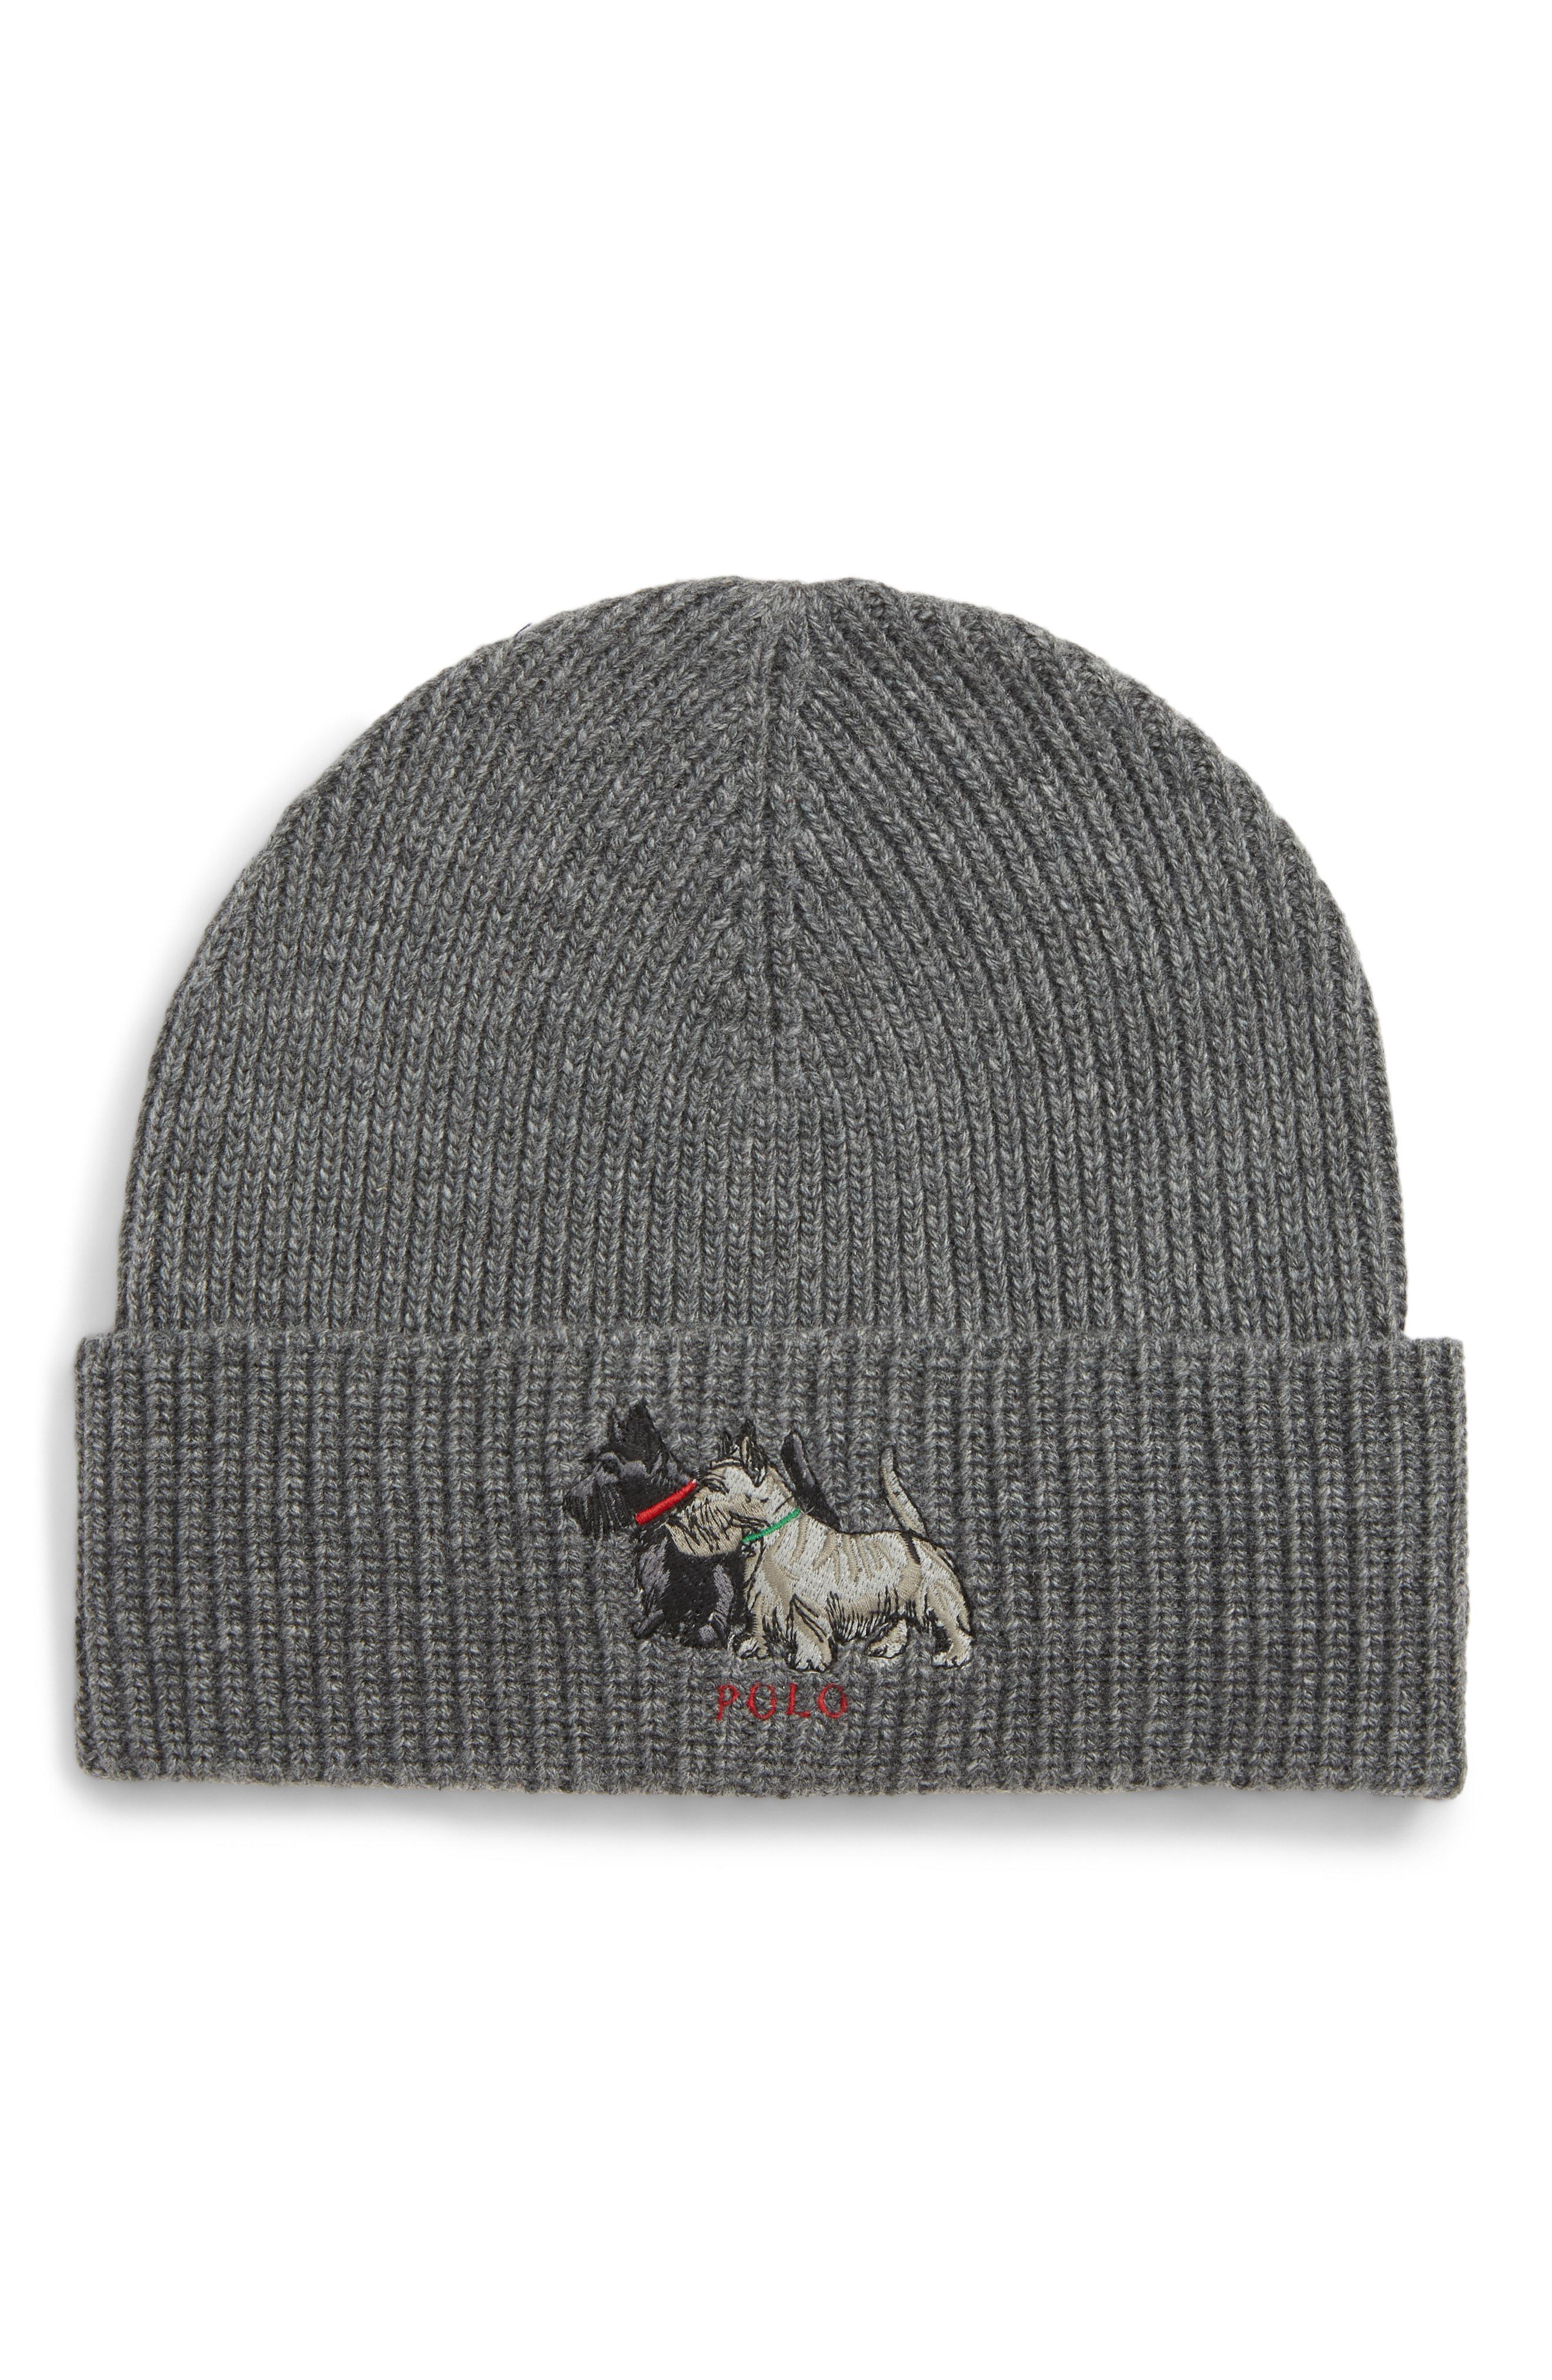 6dc175e59f496 Polo Ralph Lauren Embroidered Scottie Dogs Beanie in Gray for Men - Lyst